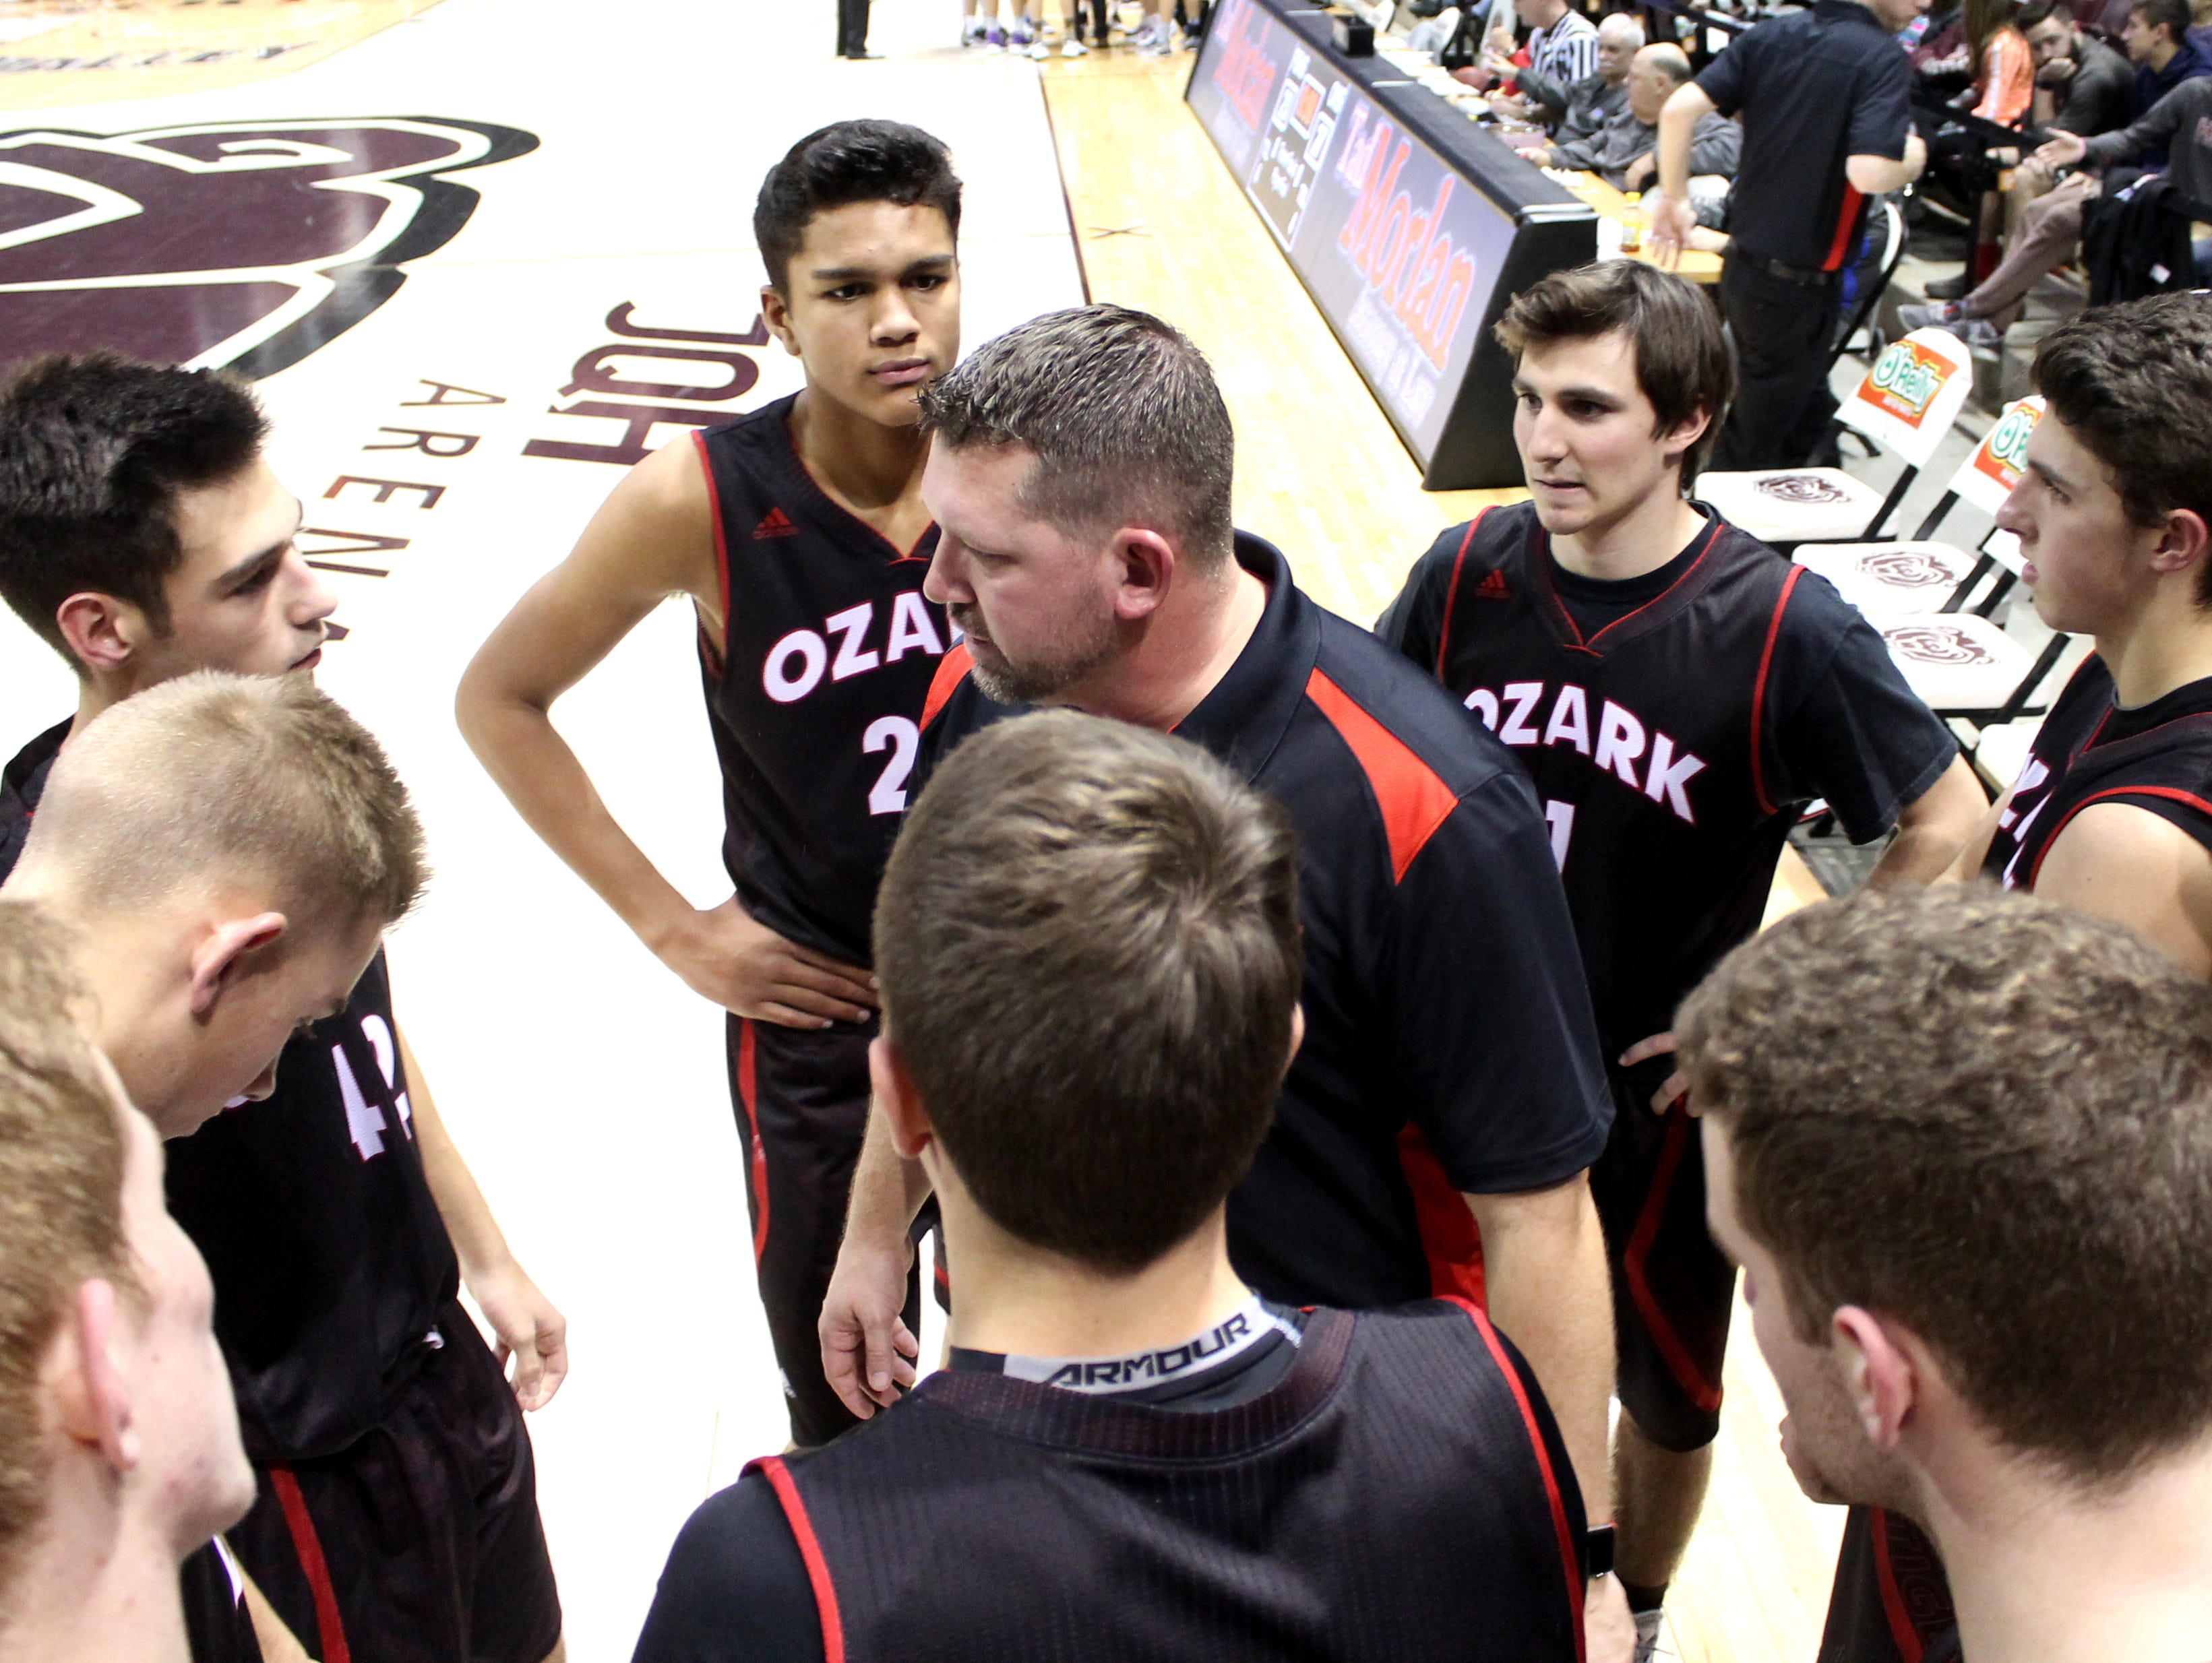 The Ozark Tigers surround coach Mark Schweitzer during the 2016 Greenwood Blue and Gold Tournament at JQH Arena.